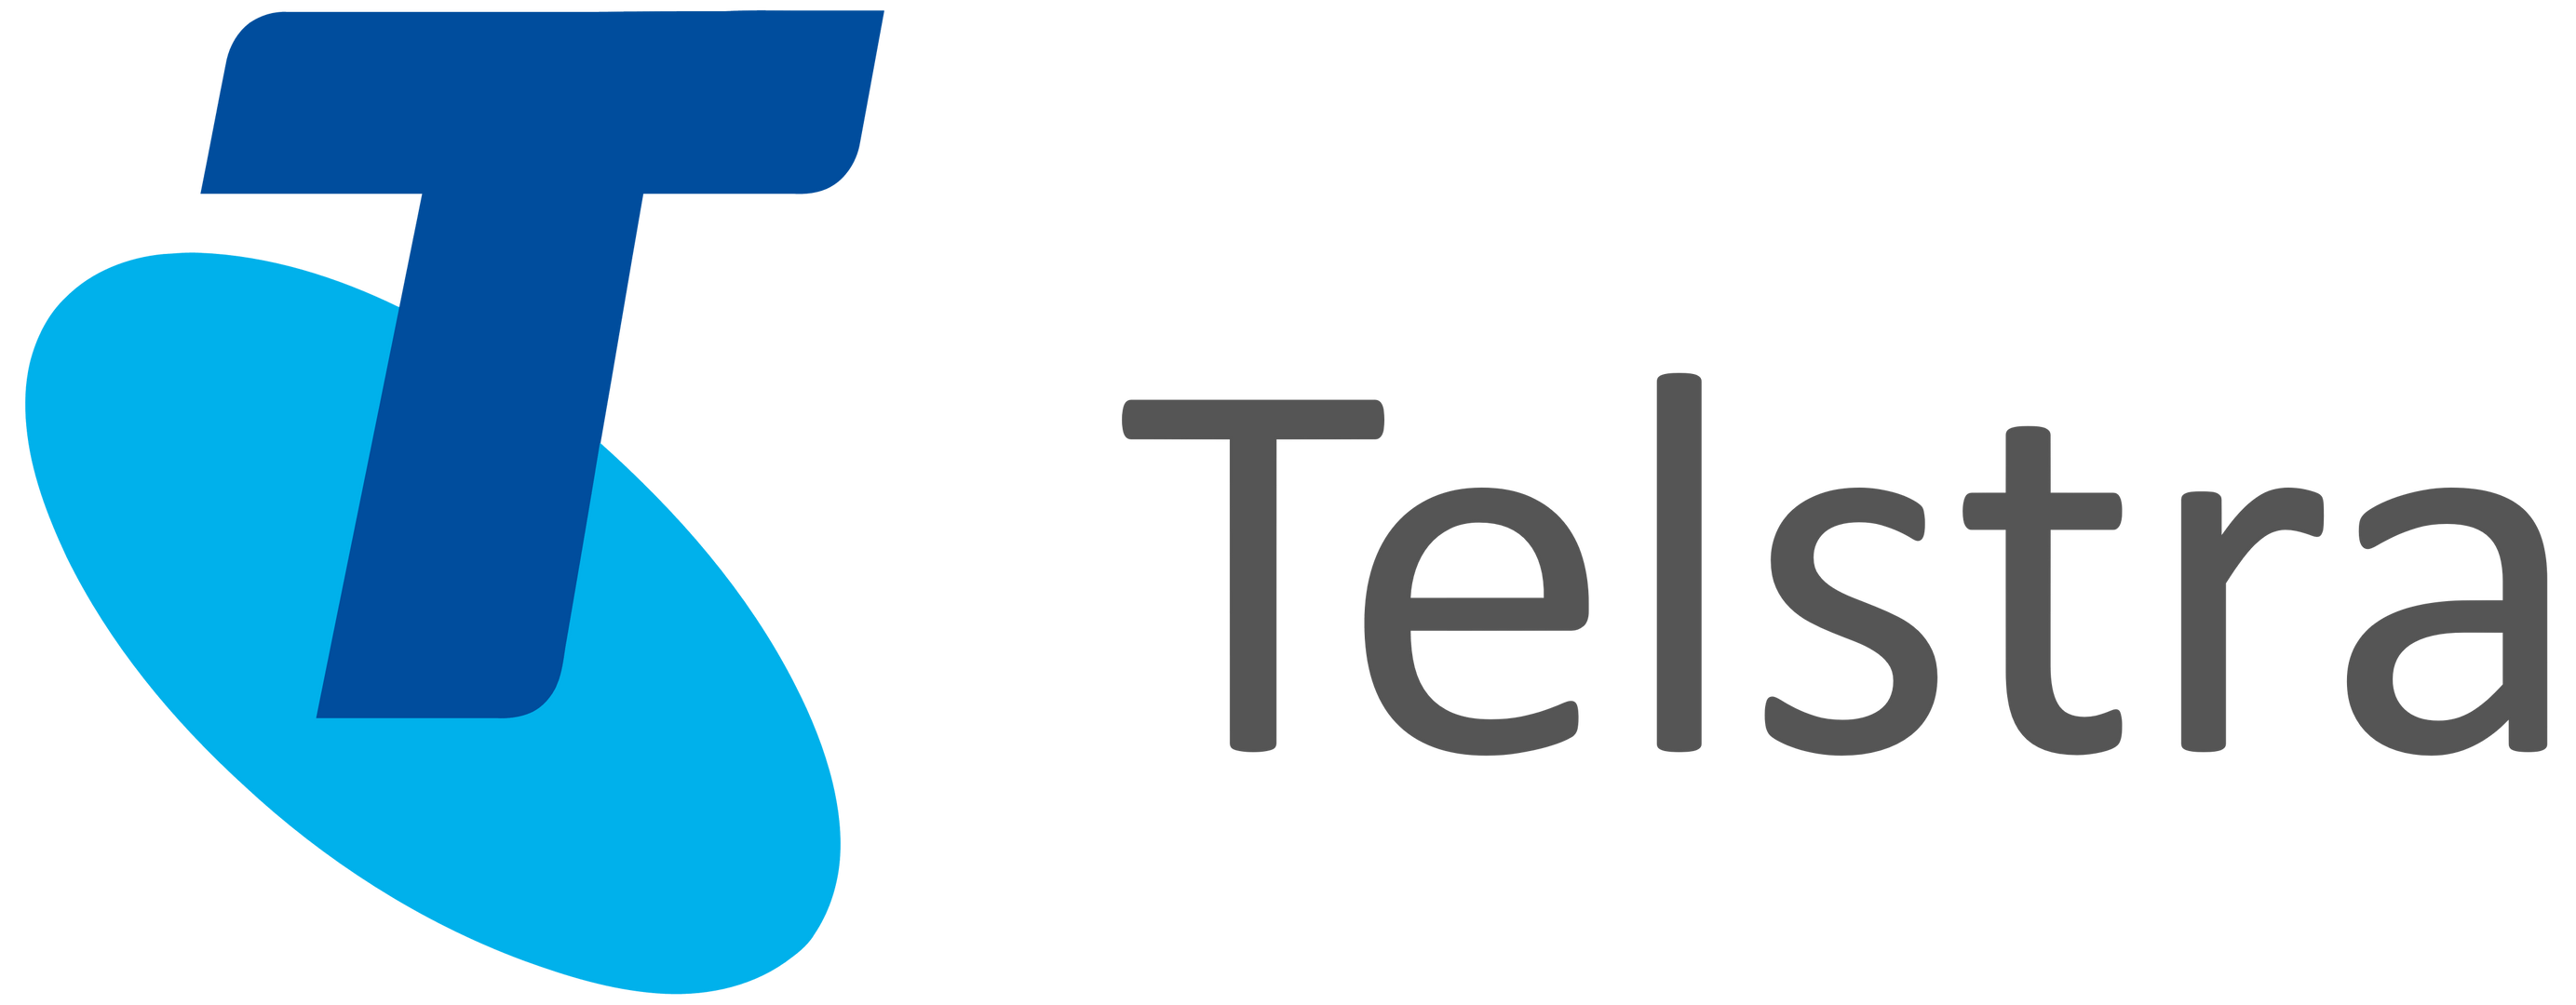 new-Telstra-logo-png-latest.png